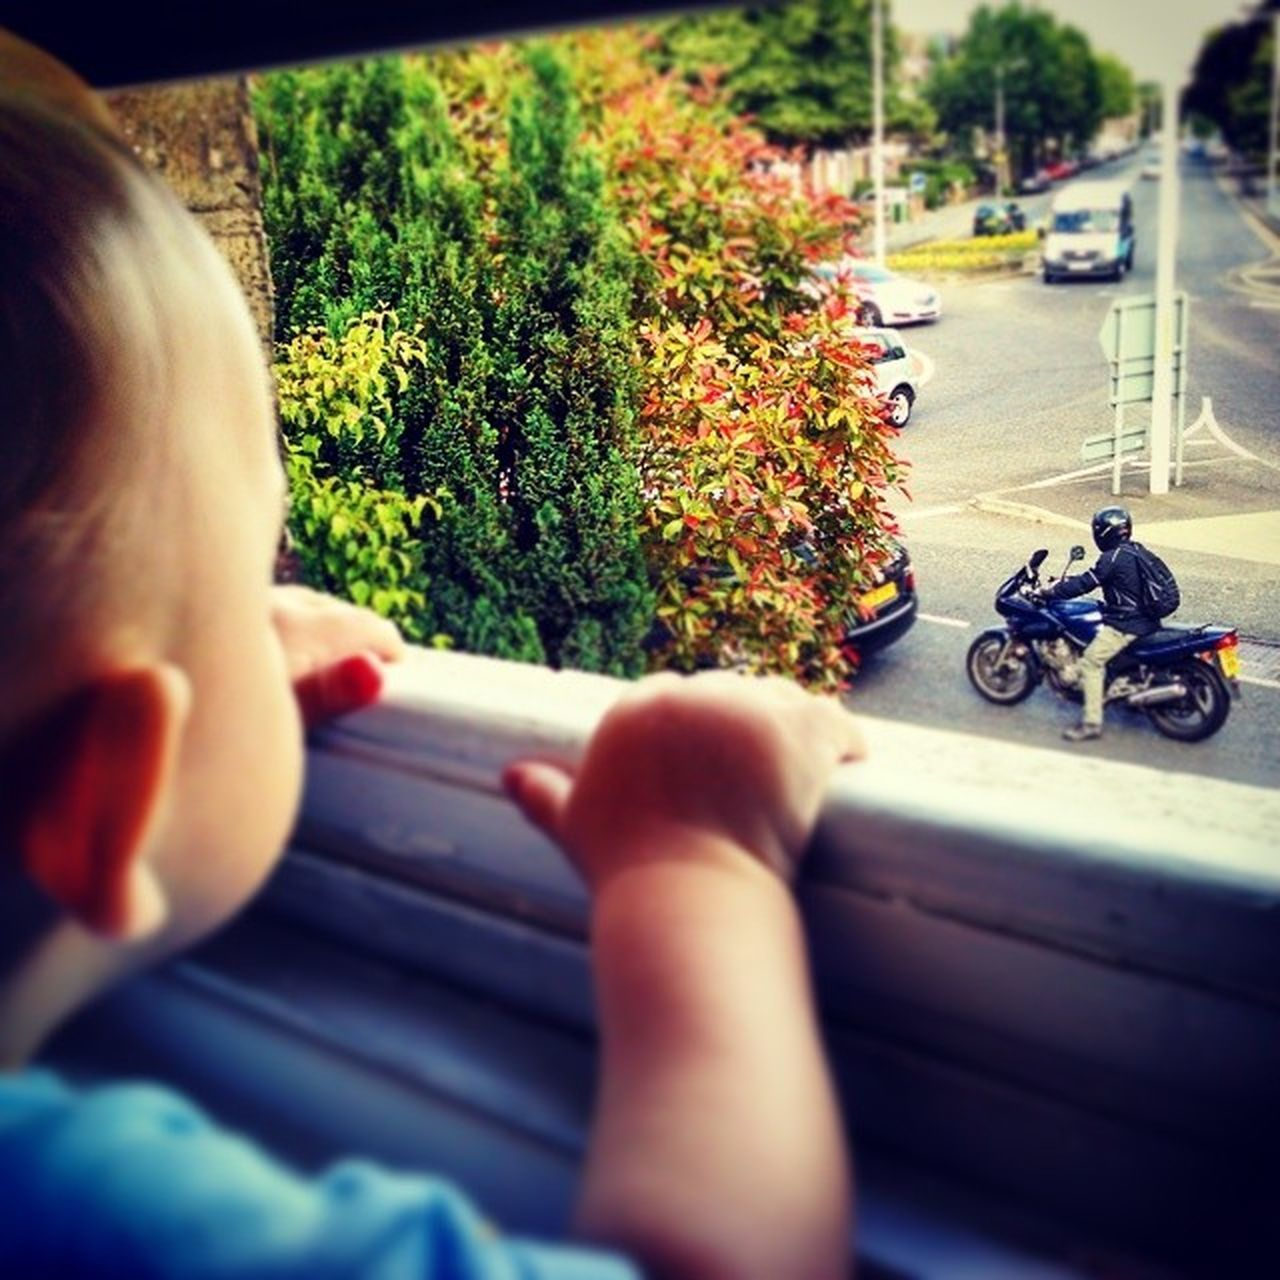 transportation, mode of transport, land vehicle, selective focus, car, road, real people, autumn, street, day, outdoors, childhood, one person, tree, motorcycle, close-up, people